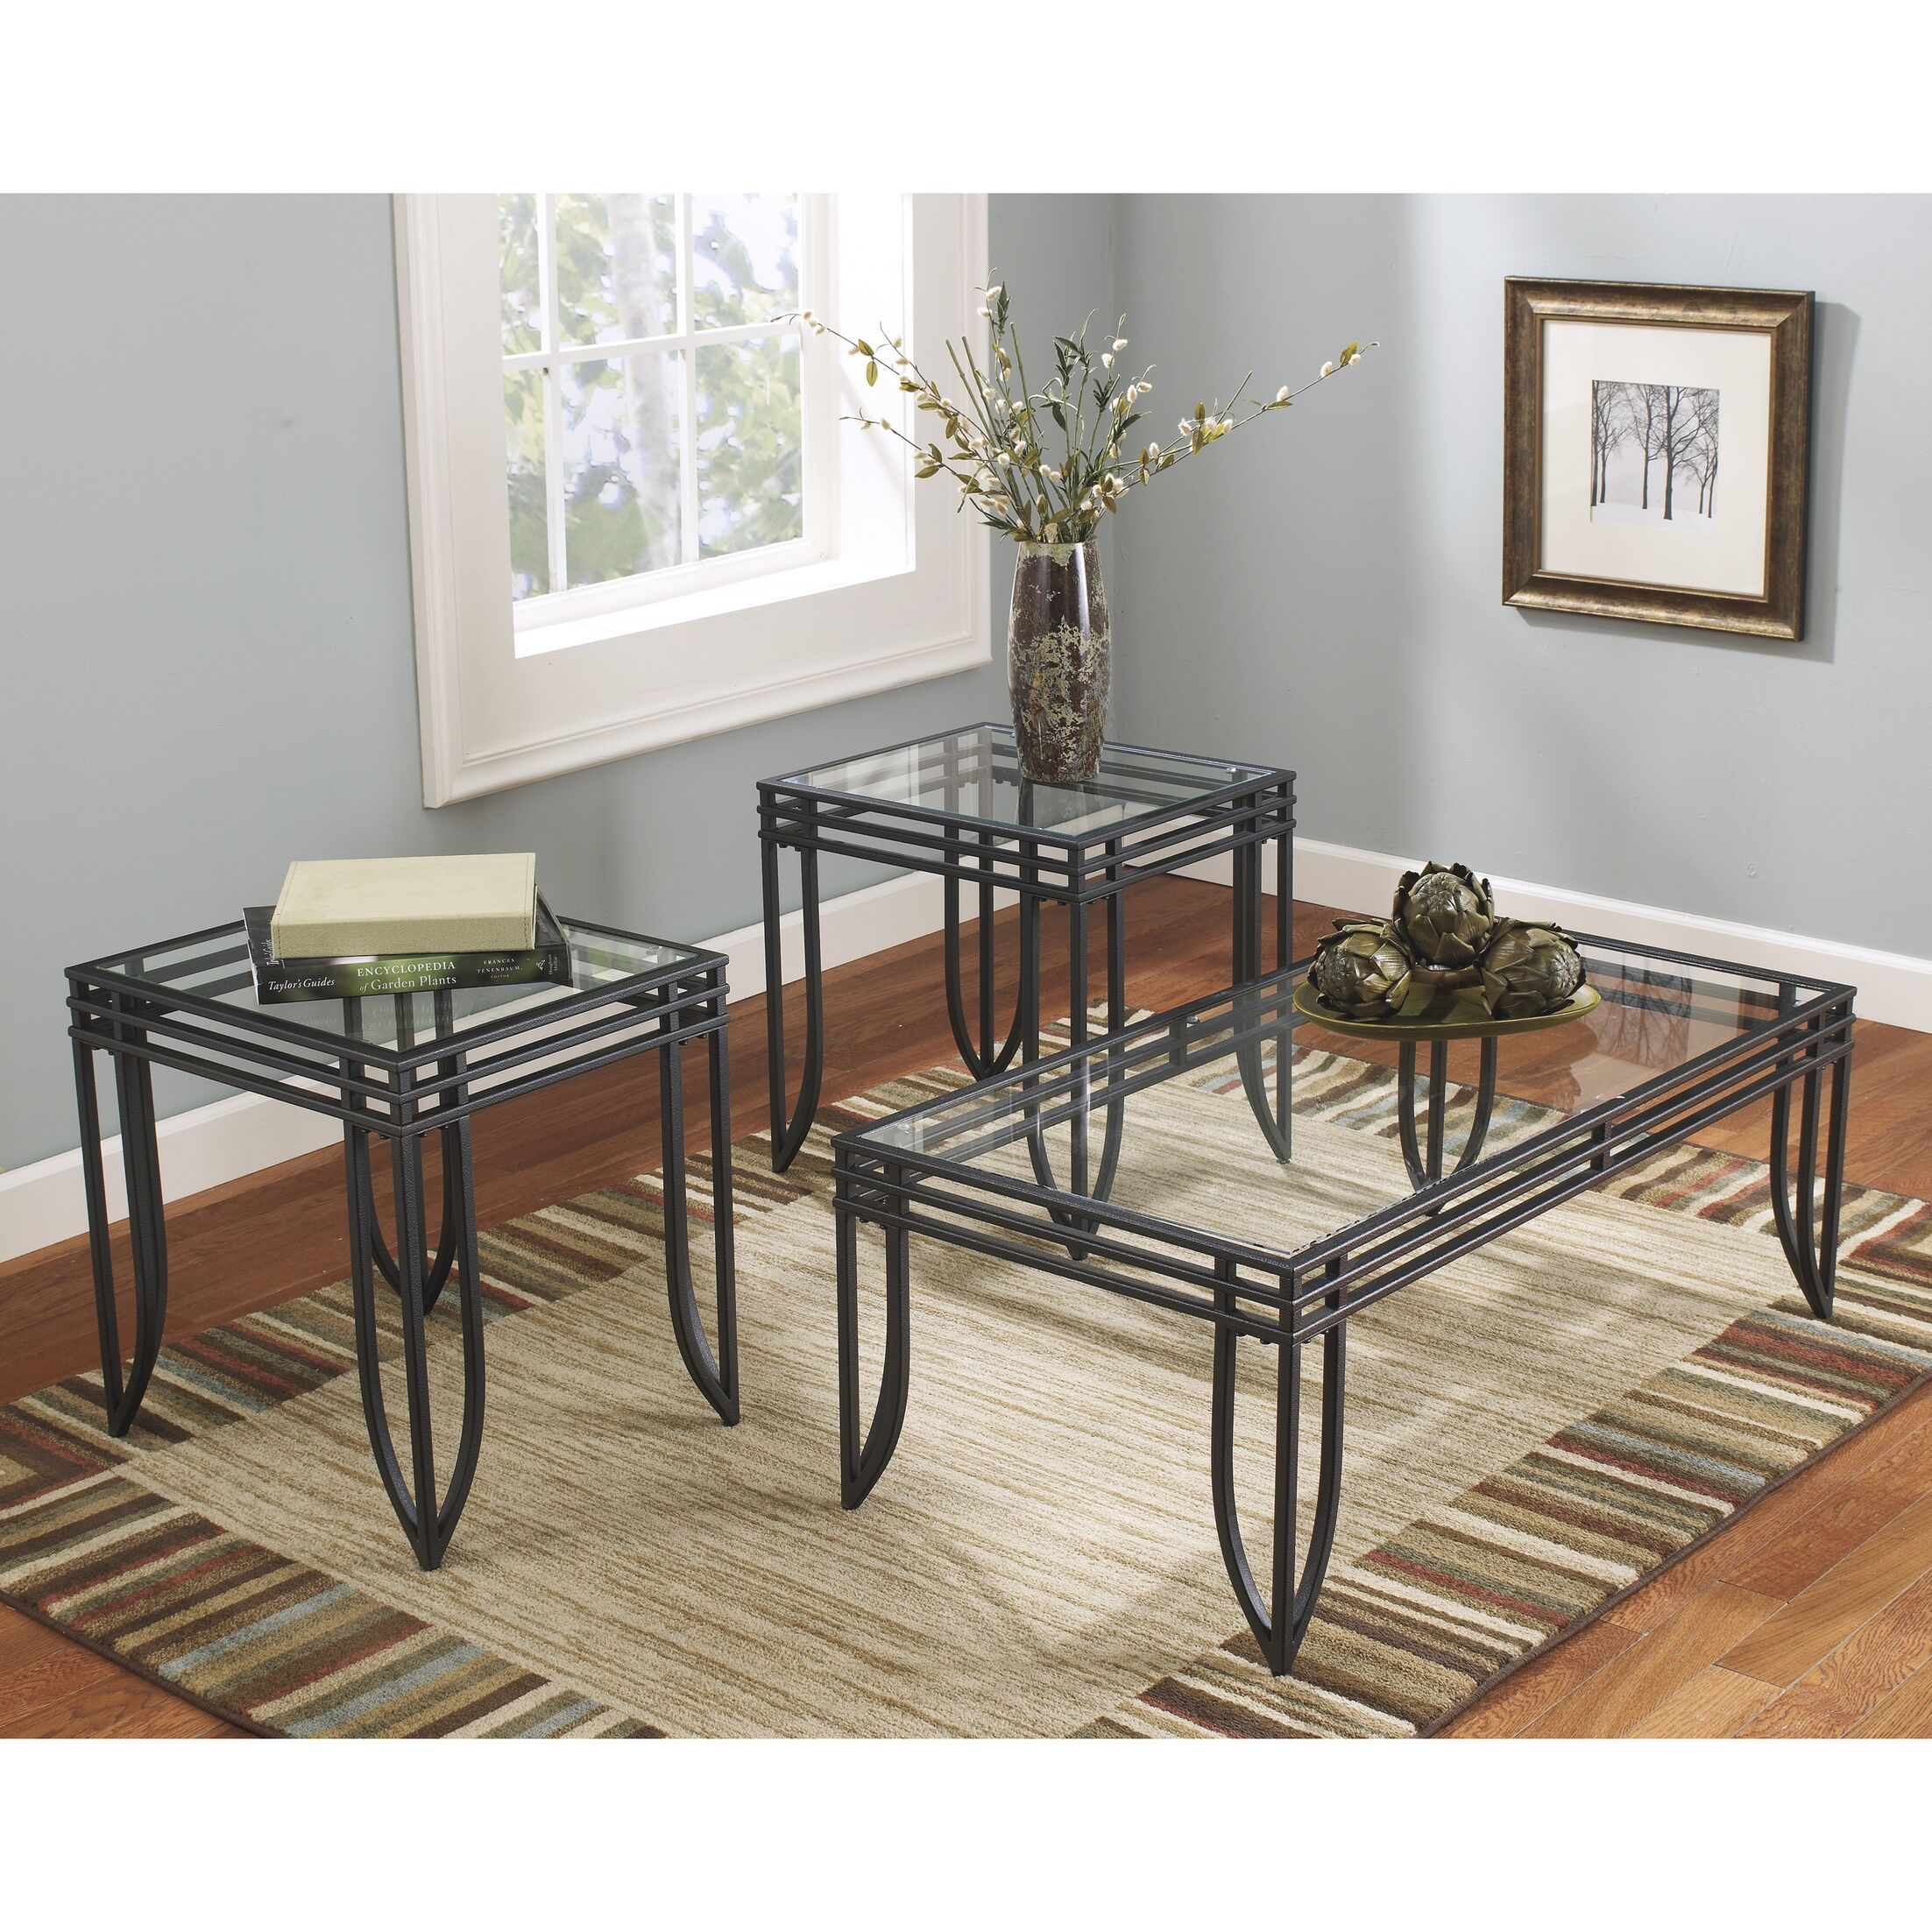 Ashwin 3 Piece Coffee Table Set